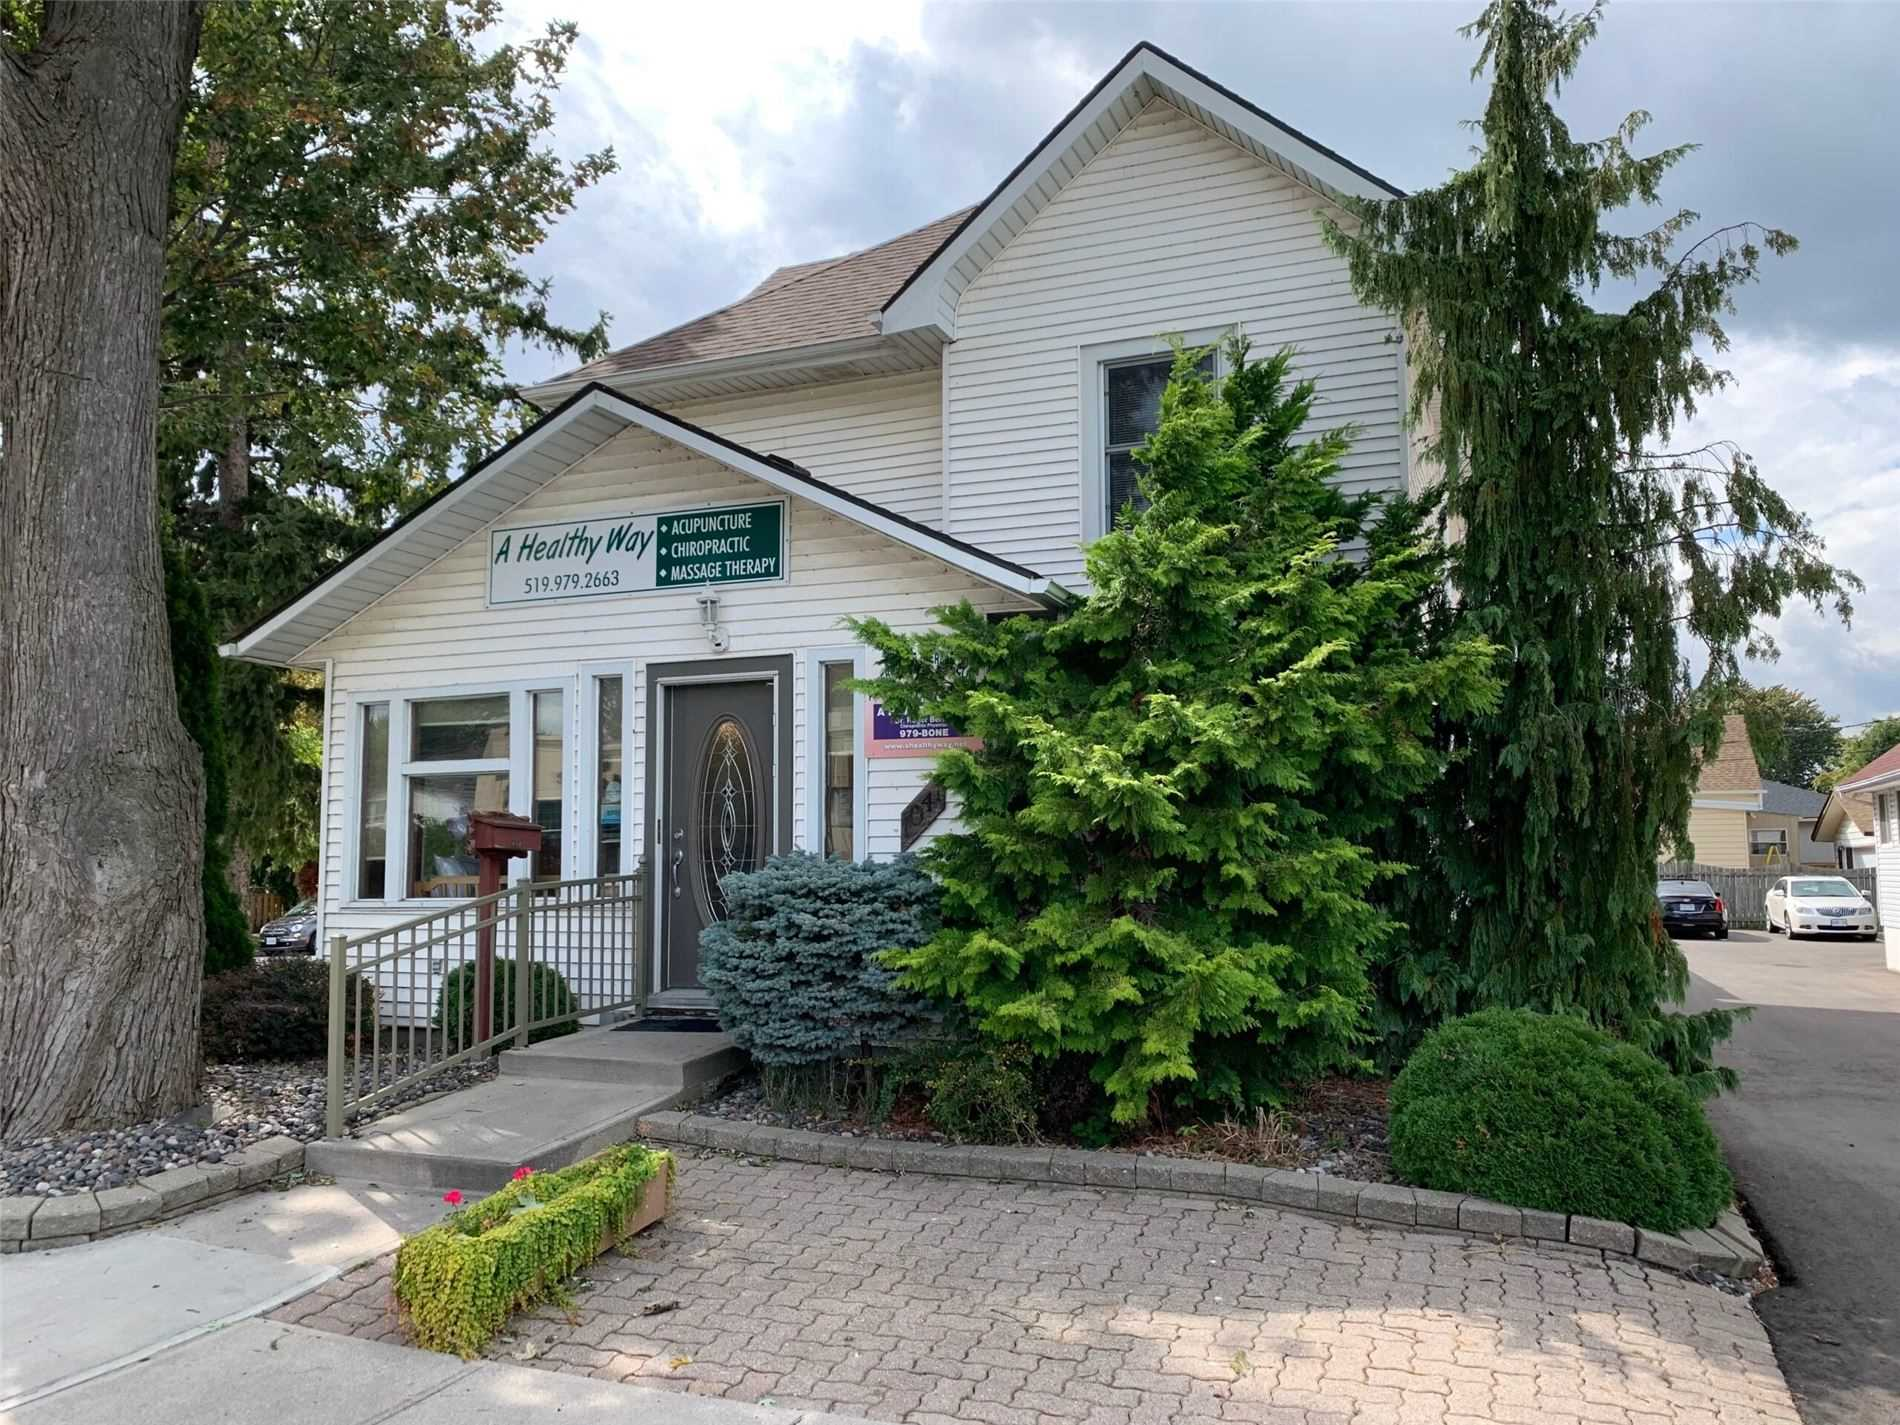 2500 Sqft, 3 Level, Corner Lot, Detached Two Car, 2 Story Garage (2nd Floor Finished).  Zoned C3-8 Residential / Office Use Commercial.  This Location Is Available For Lease At $3000 Per Month (Garage Excluded).   Master Bedroom 3rd Floor (Full Bathroom And Gas Fireplace).   4 Large Rooms 2nd Floor (Full Bath).  1st Floor: Reception Room, 4 Rooms, Kitchen, Full And Half Bathroom, Laundry Room, Parking Front And Rear...